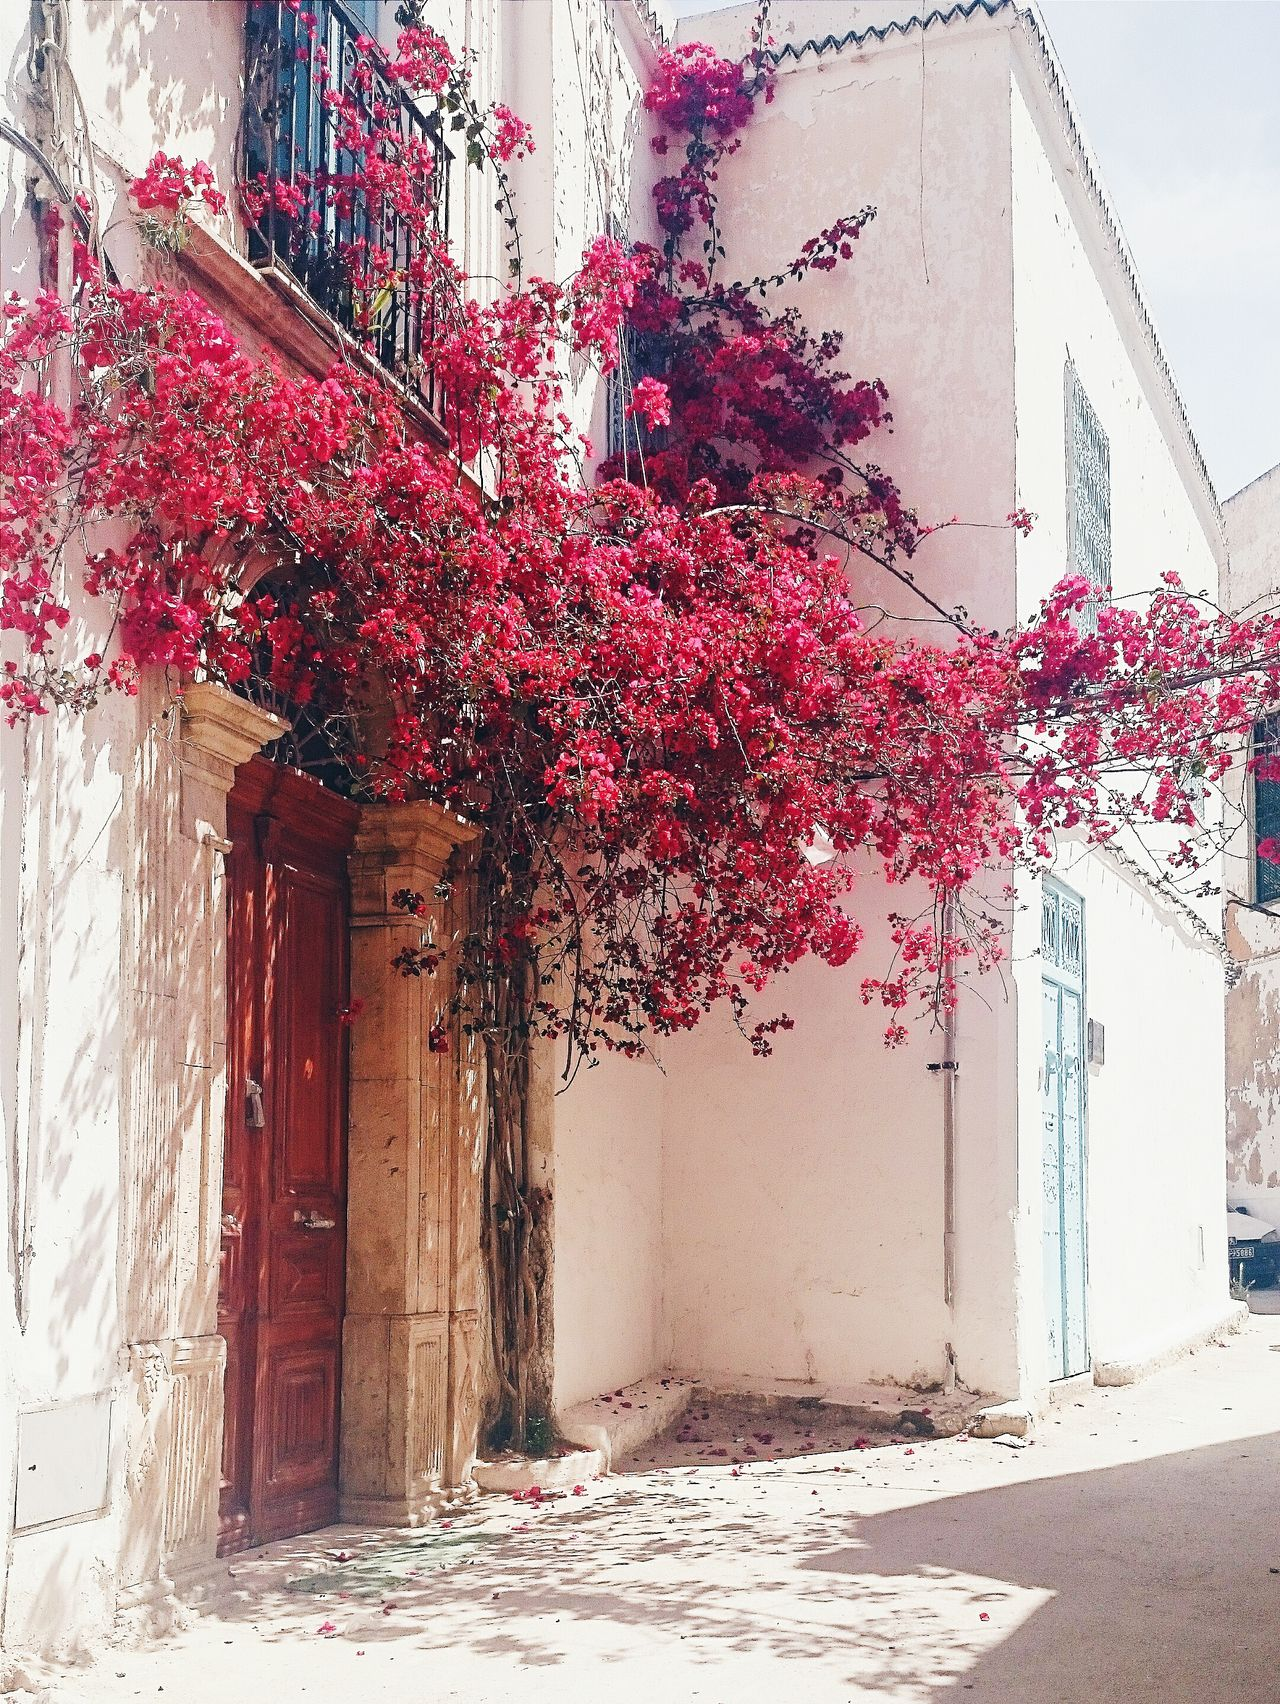 تونس عشقة ما توفاش... Eyeemtunisia EyeemMedina Hanging Out Lights Flowers Red Taking Photos Best Of EyeEm